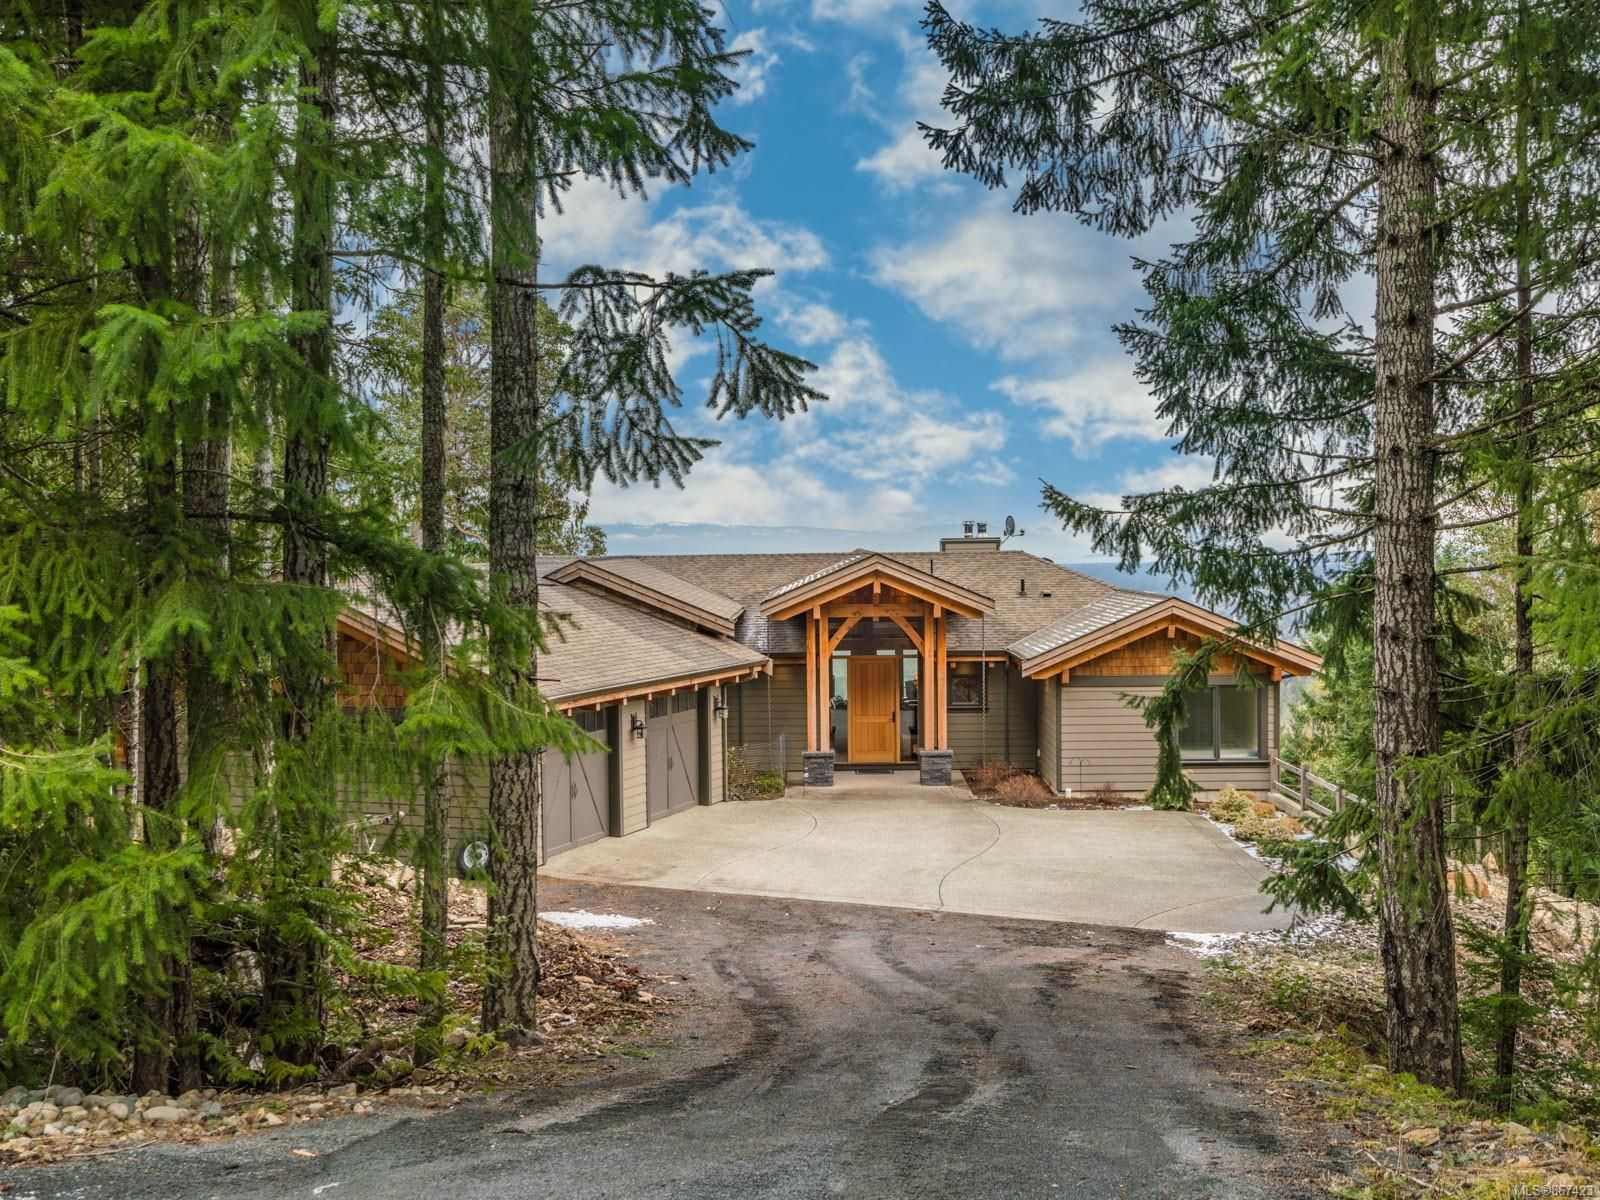 Main Photo: 1740 Warn Way in : PQ Little Qualicum River Village House for sale (Parksville/Qualicum)  : MLS®# 867423